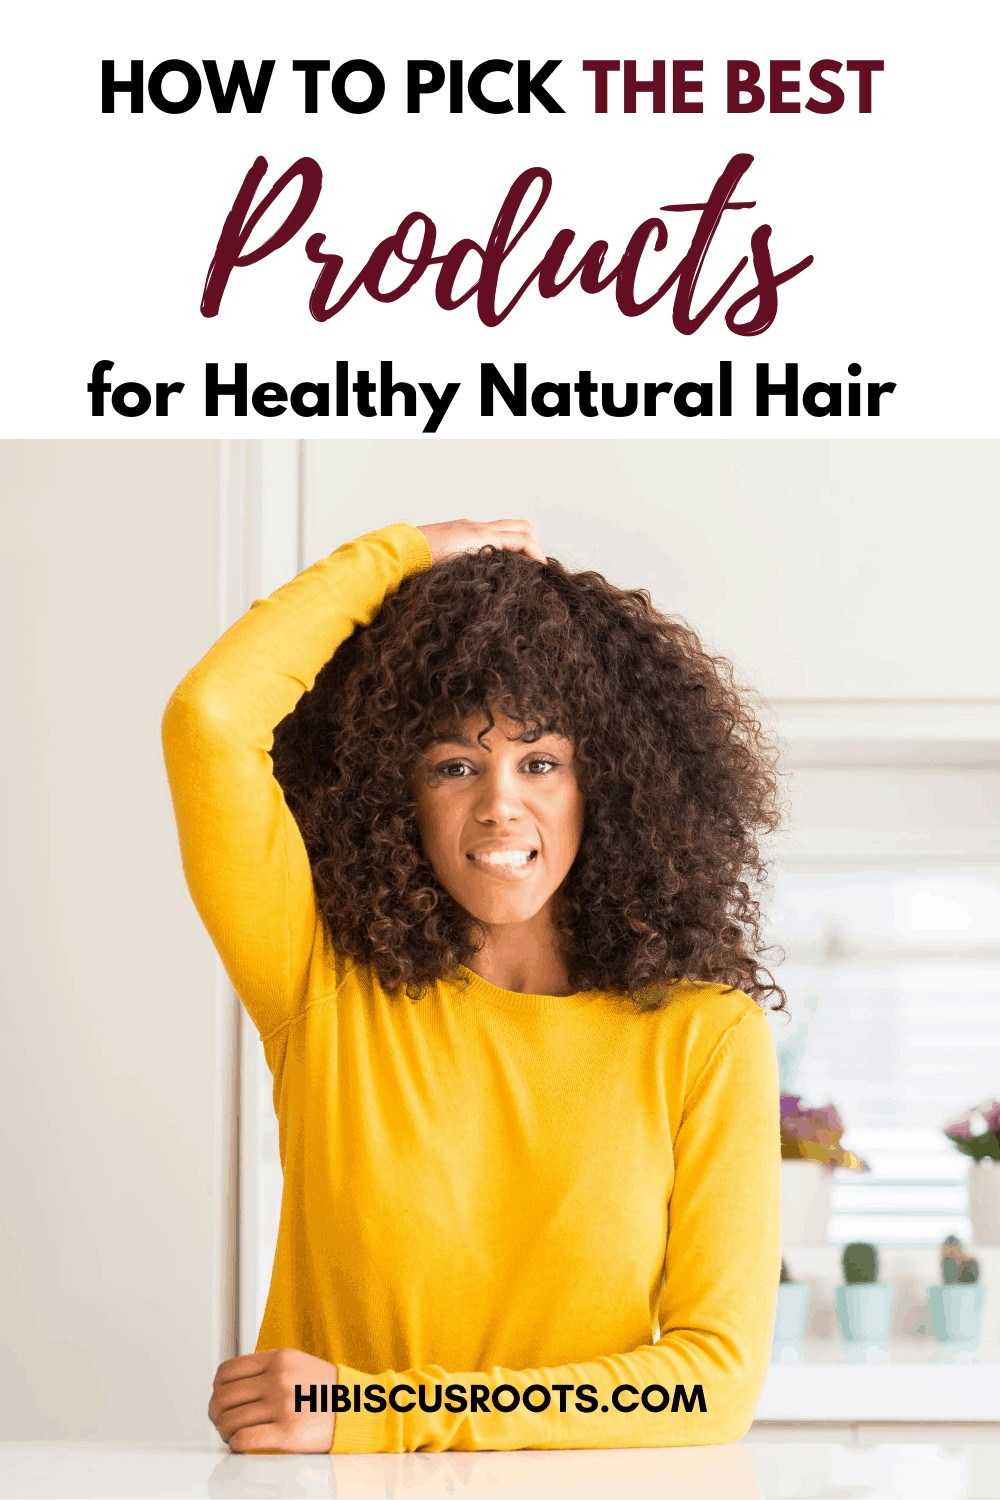 Beauty Supply Guide: How to Stop Buying the Wrong Natural Hair Products!